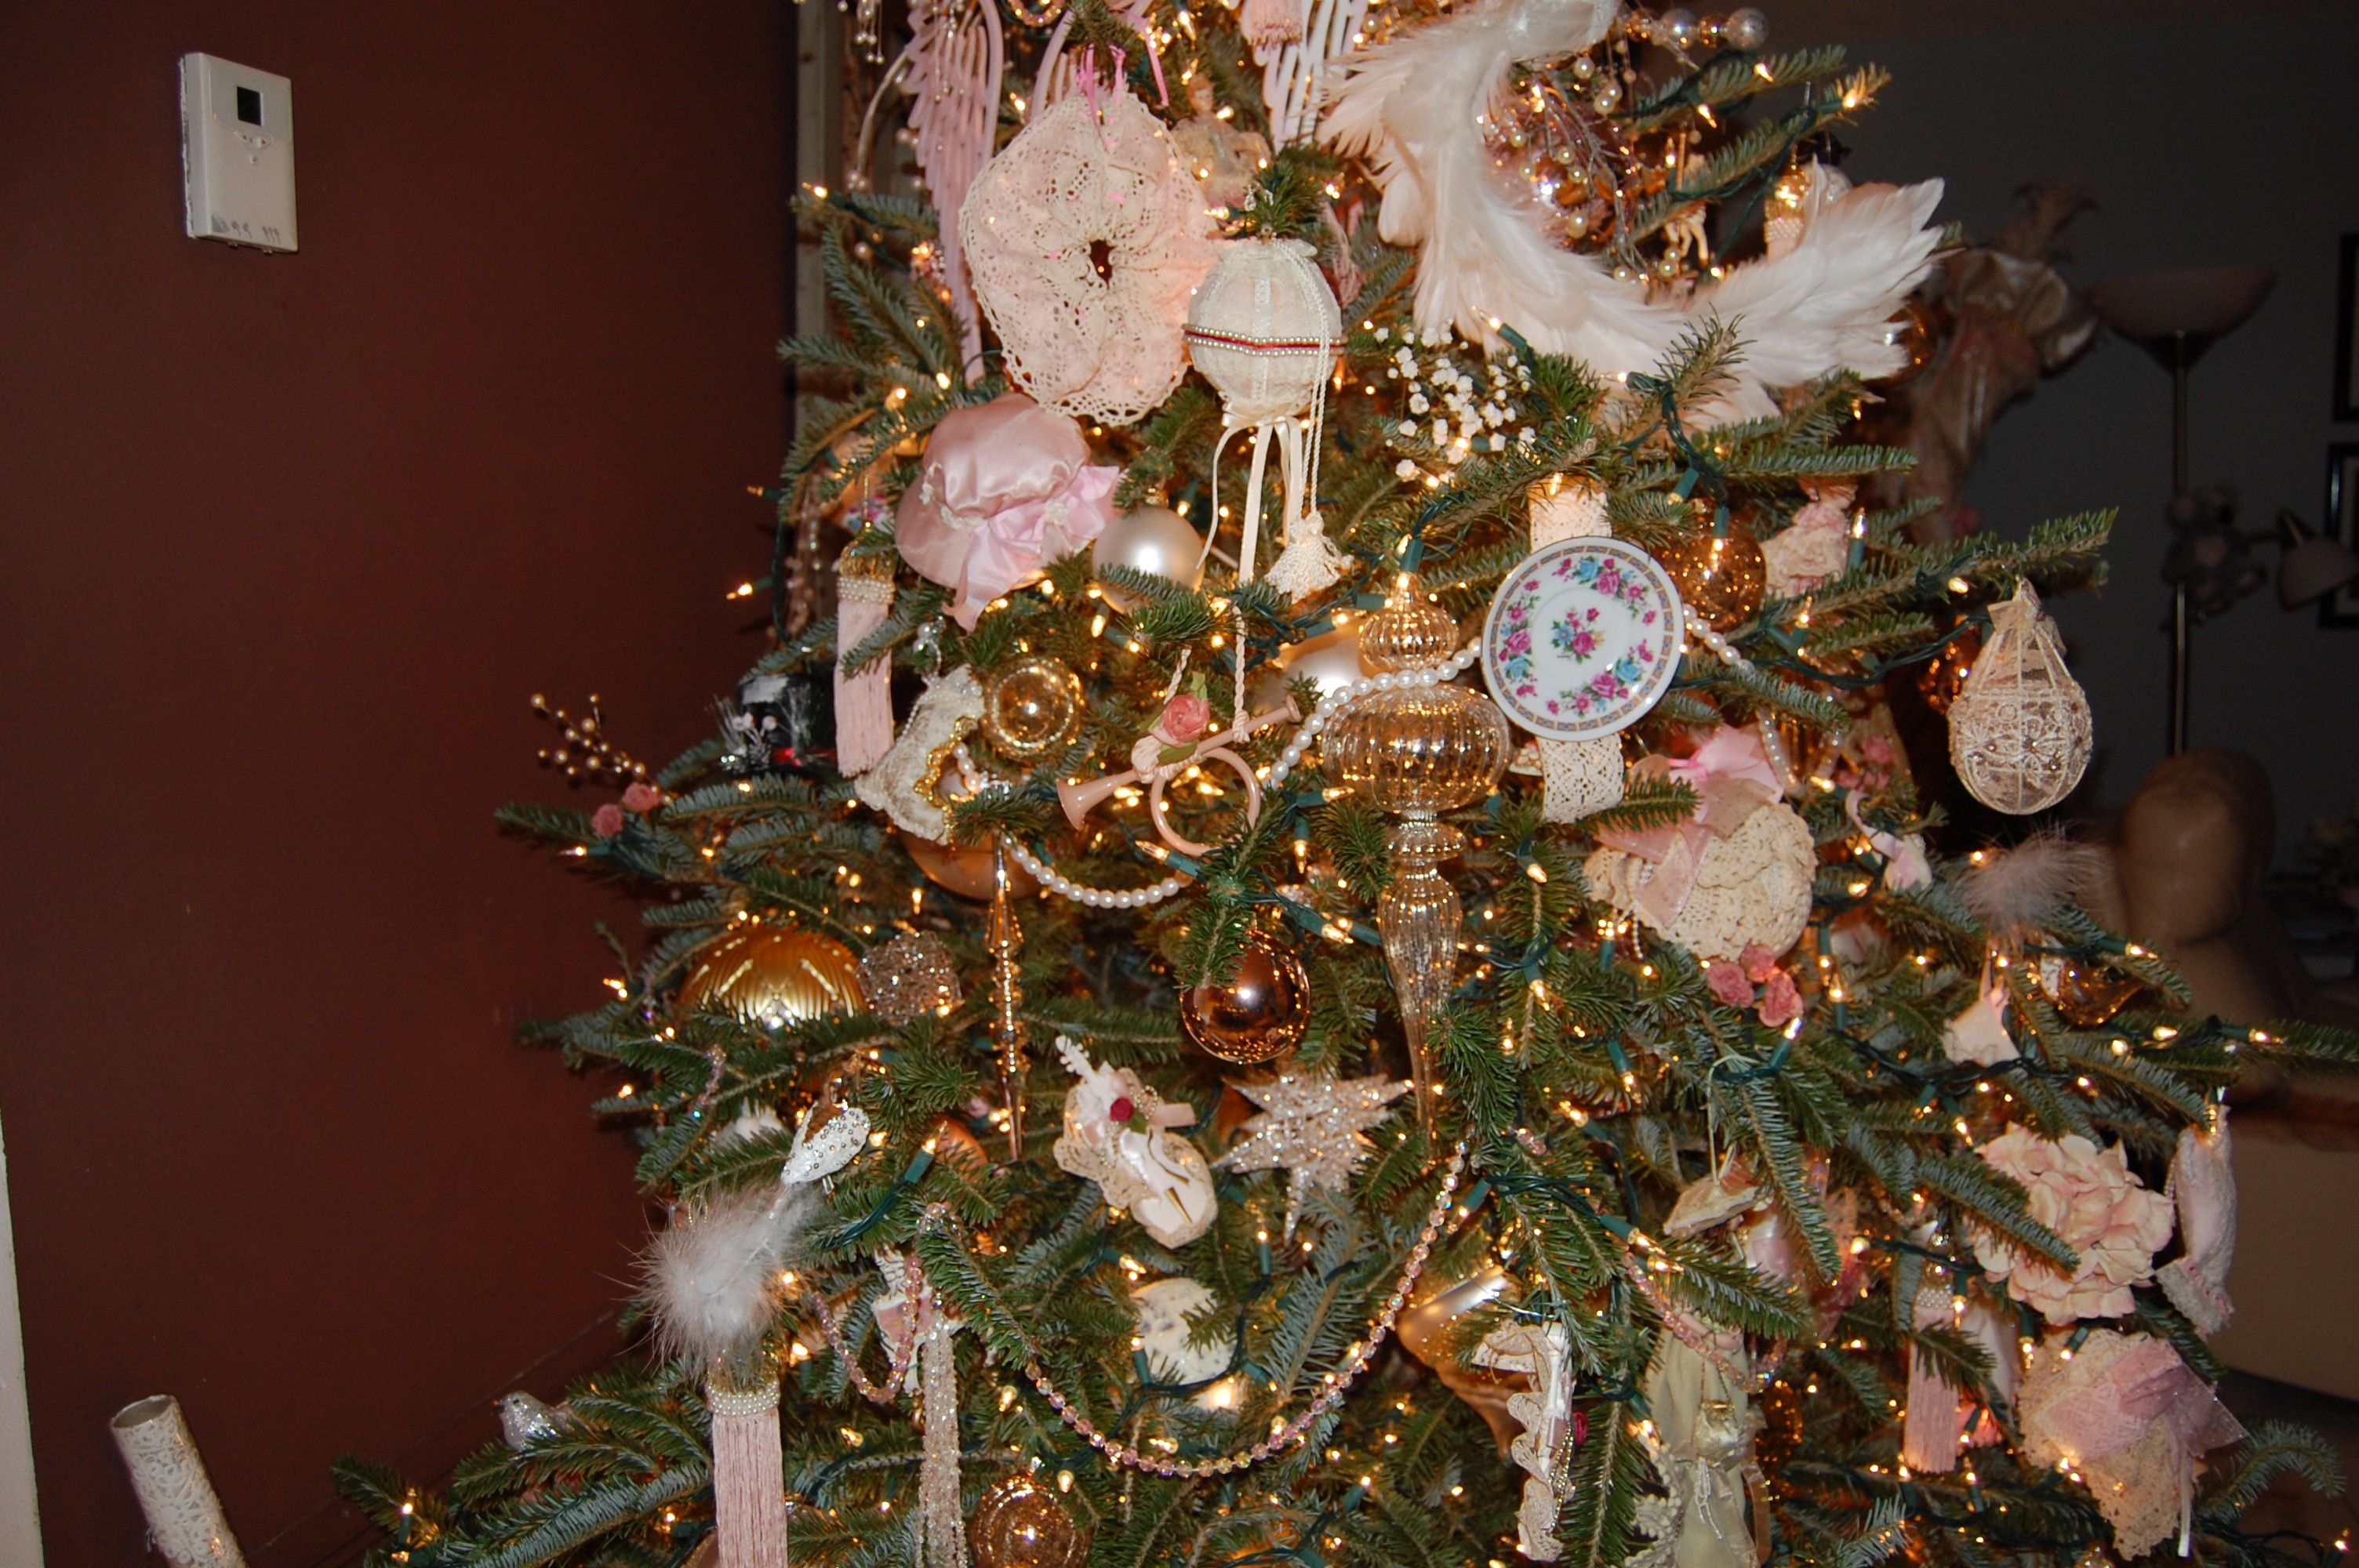 Pink Victorian Tree Ornaments Include White Peacock With